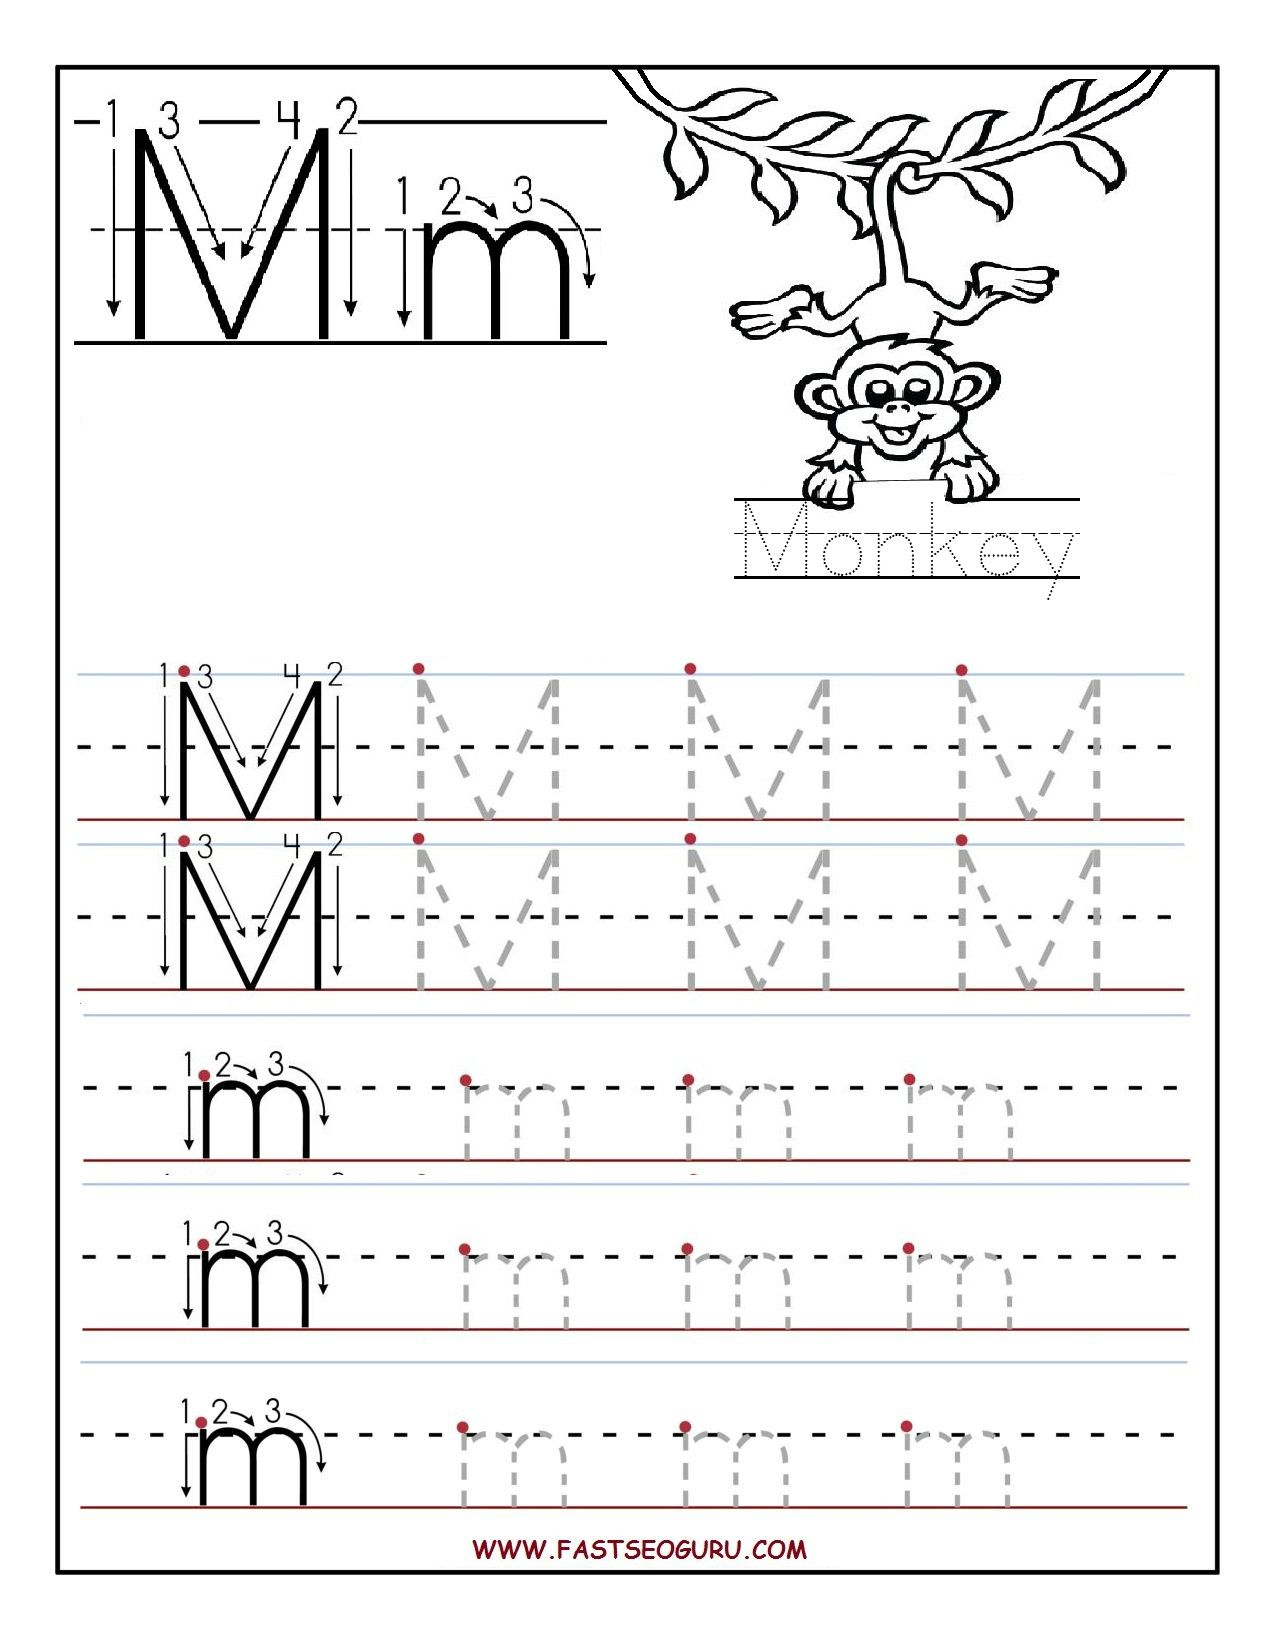 Printable Letter M Tracing Worksheets For Preschool intended for Letter M Tracing Preschool